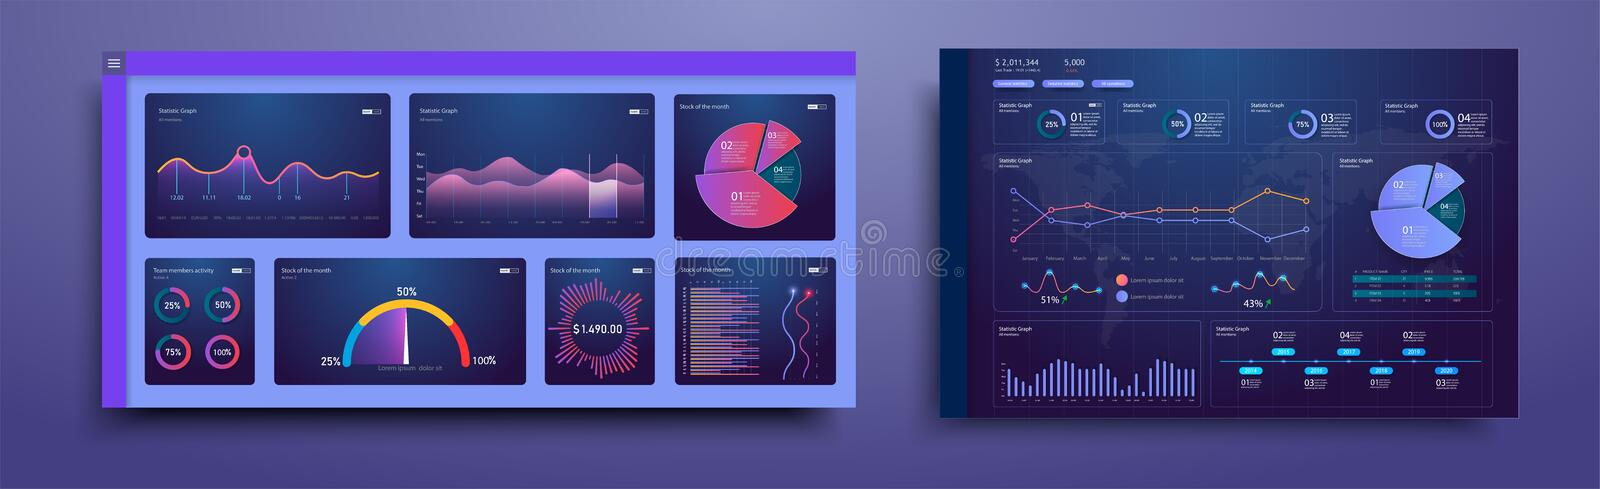 Infographic dashboard. Dashboard infographic royalty free illustration